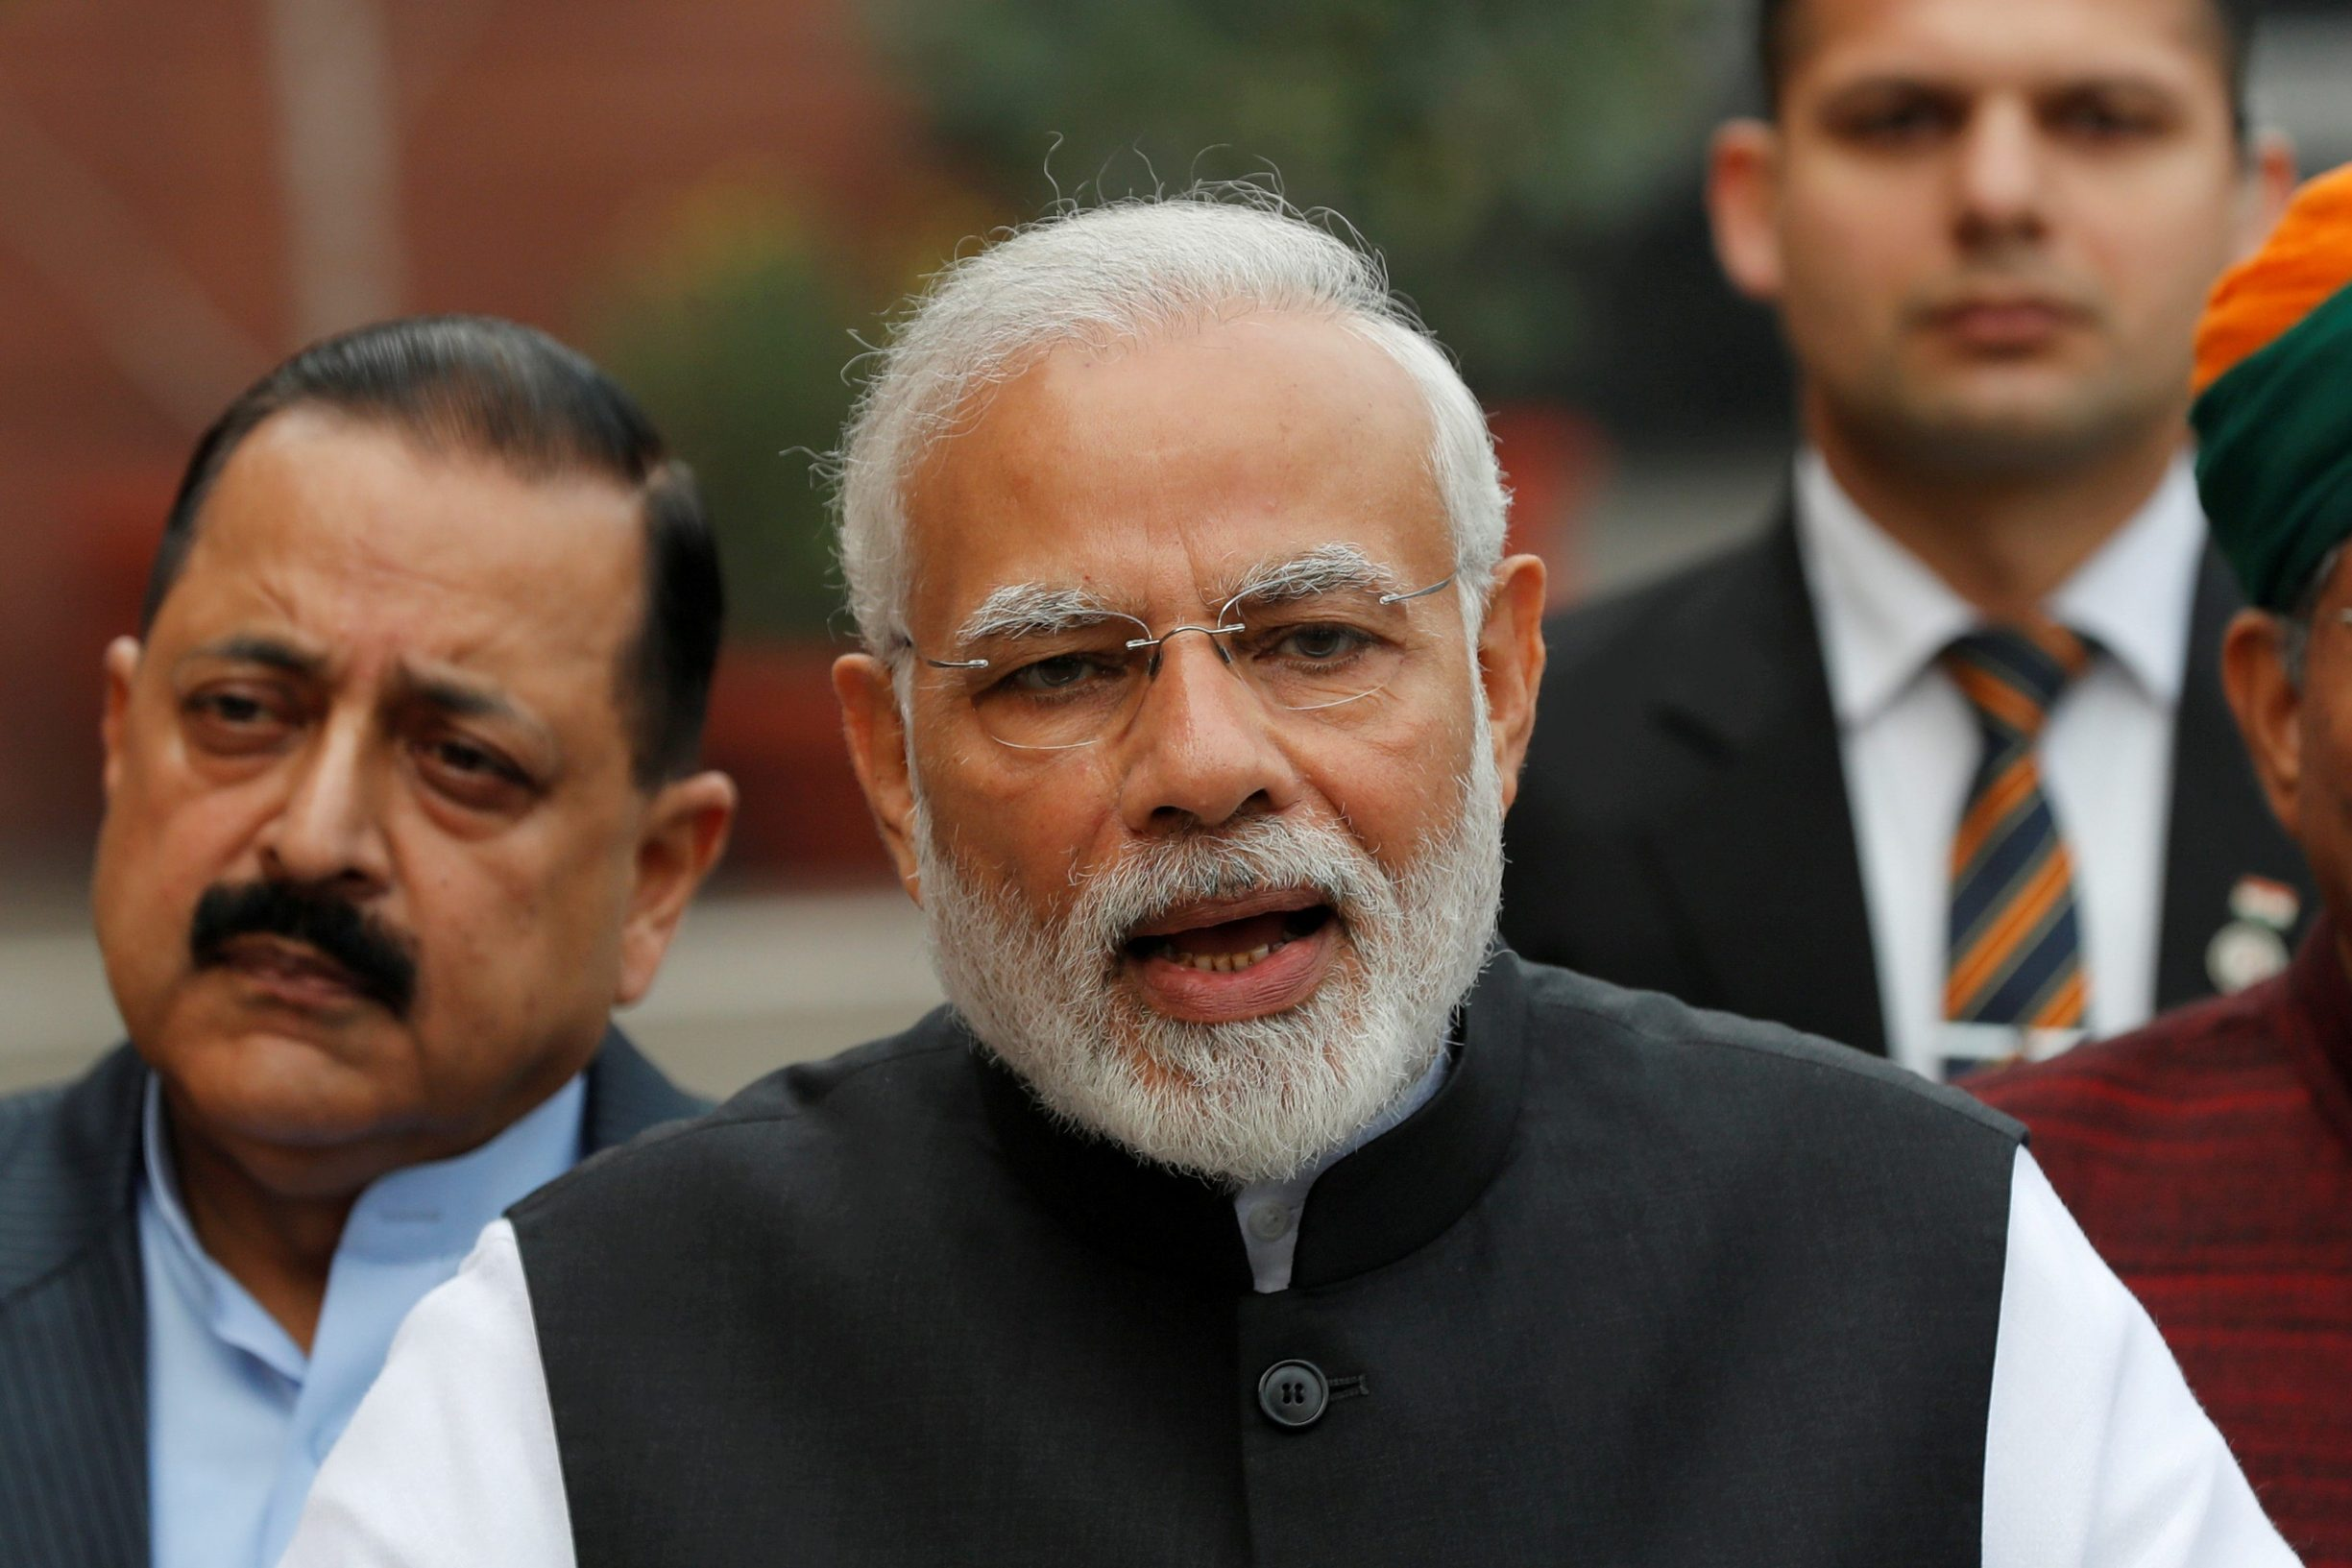 FILE PHOTO: India's Prime Minister Narendra Modi speaks with the media inside the parliament premises on the first day of the winter session, in New Delhi, India, December 11, 2018. REUTERS/Adnan Abidi/File Photo